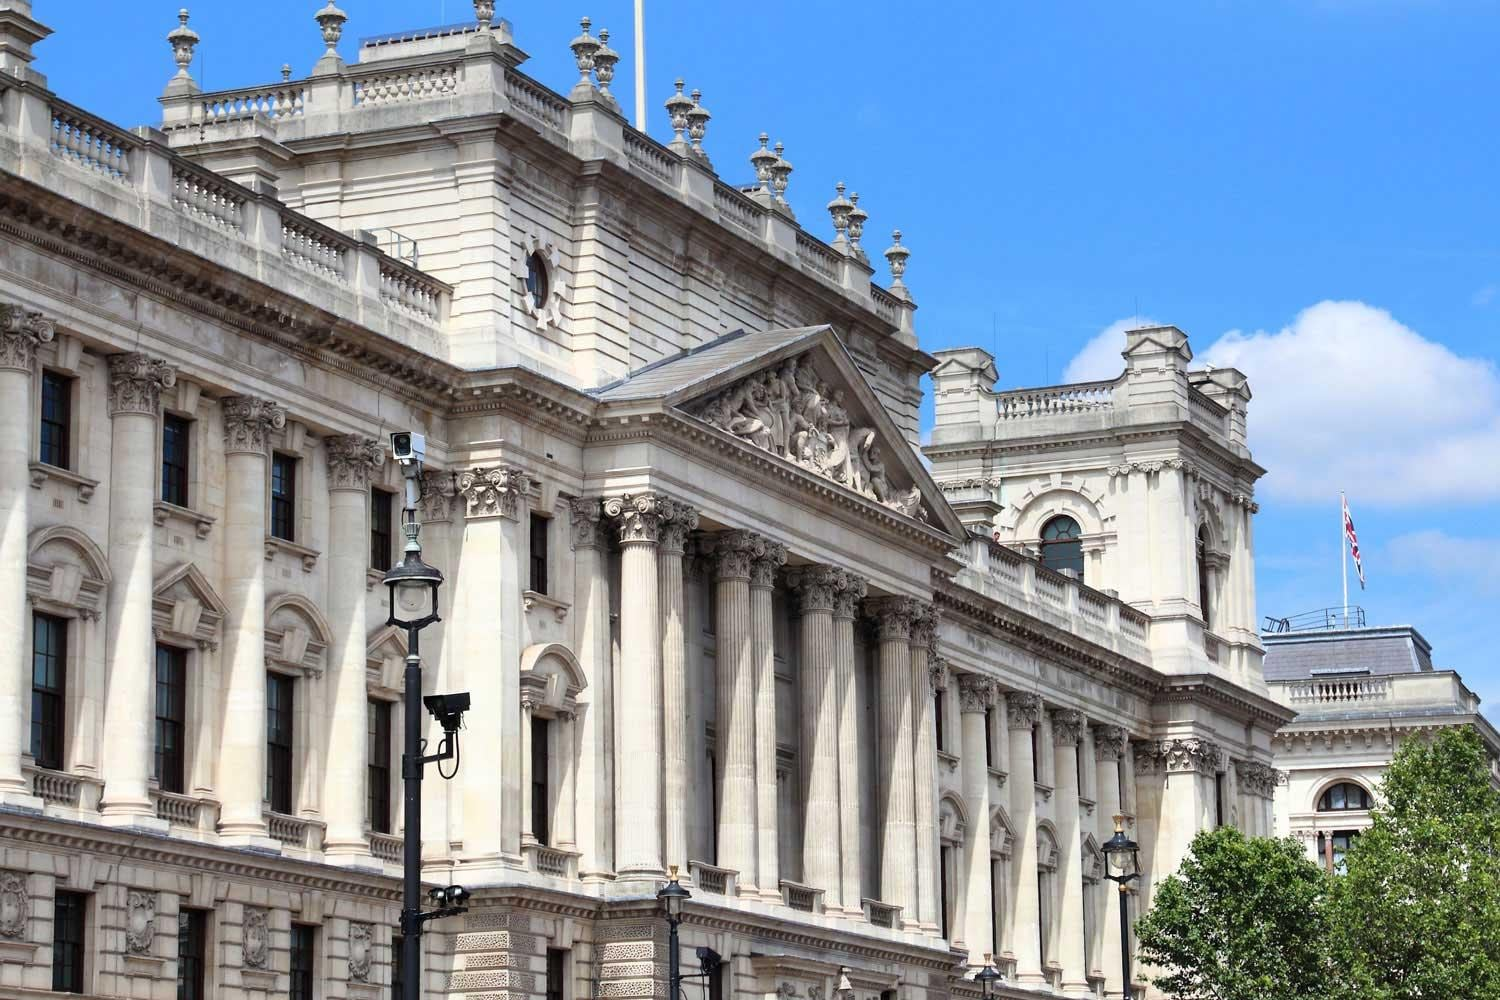 Revenue and Customs, government building